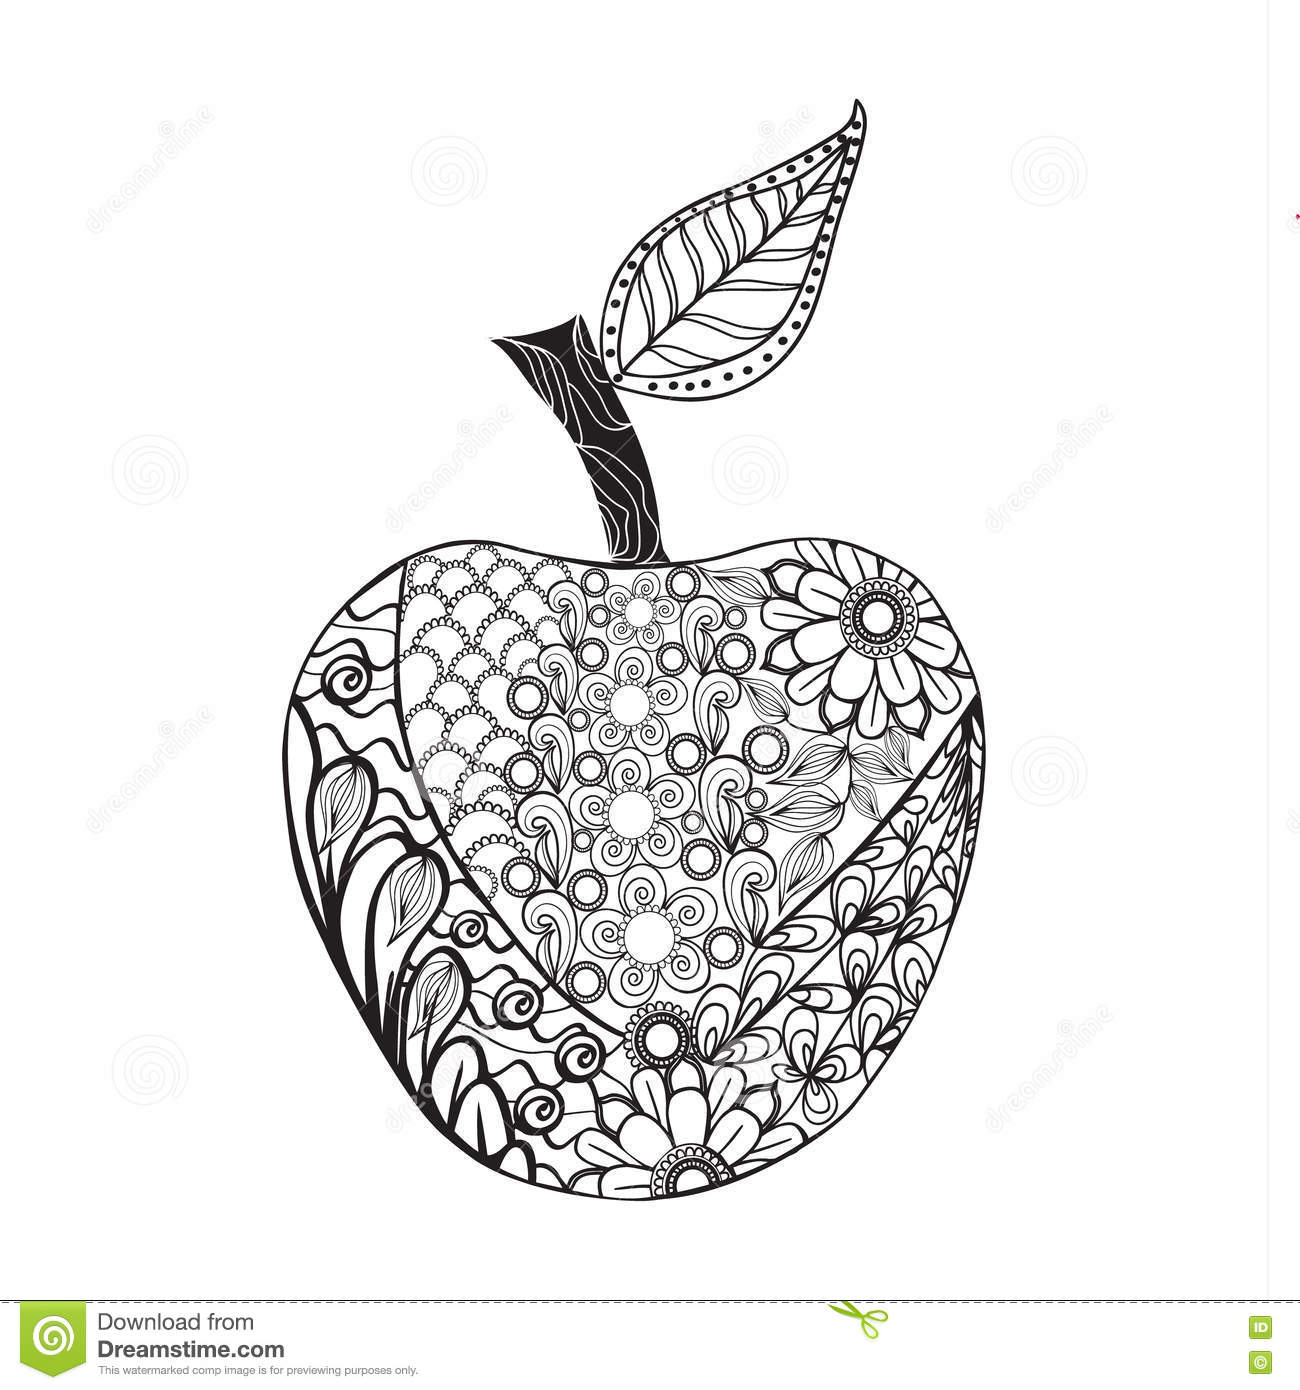 Apple Tree Coloring Pages Printable Sketch Coloring Page